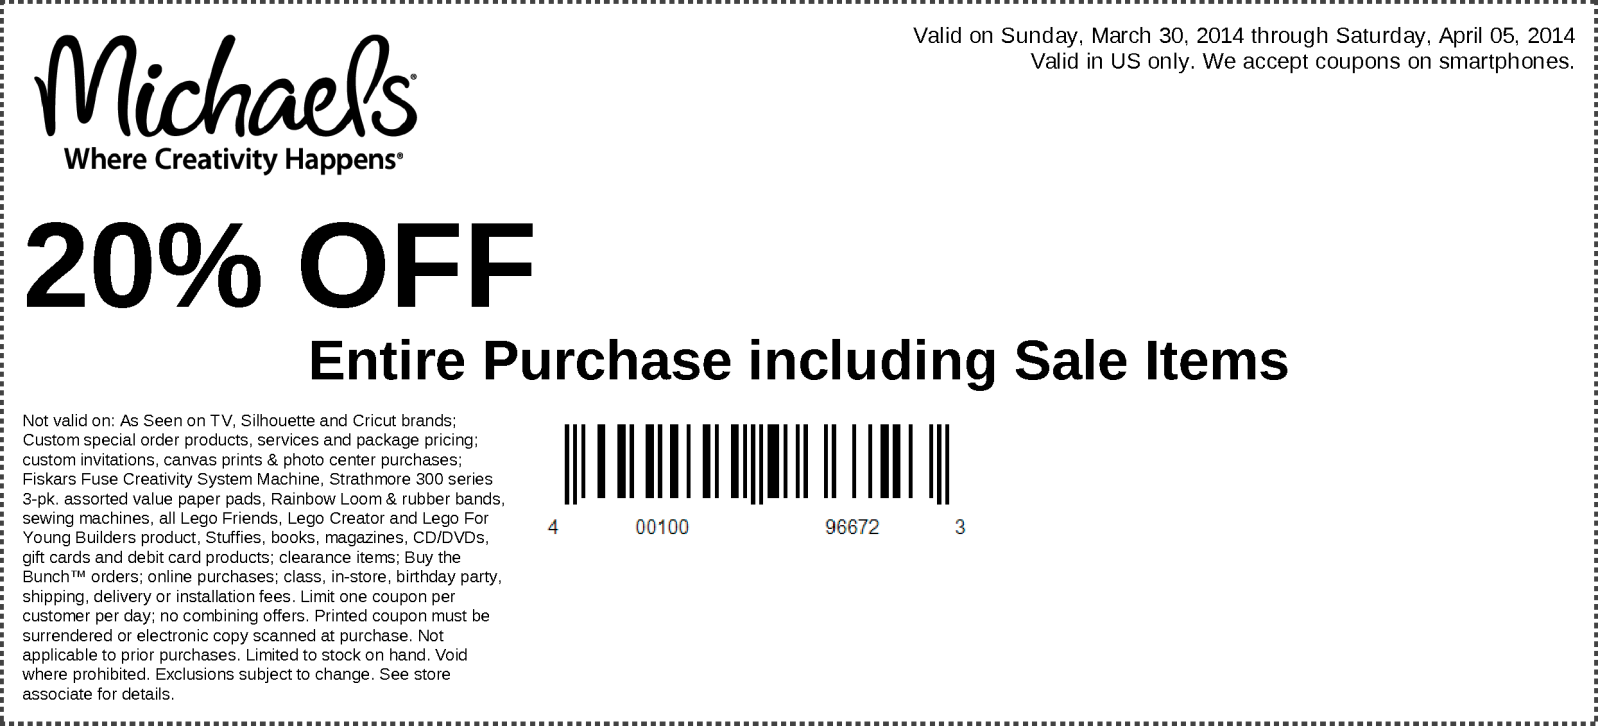 Dave and busters printable coupons january 2013 - Get 20 Percent Off One Single Item At Buy Buy Baby With Coupon Through March 17 Http Www Bestfreestuffguide Com Free_buy_buy_baby_coupons_and_co